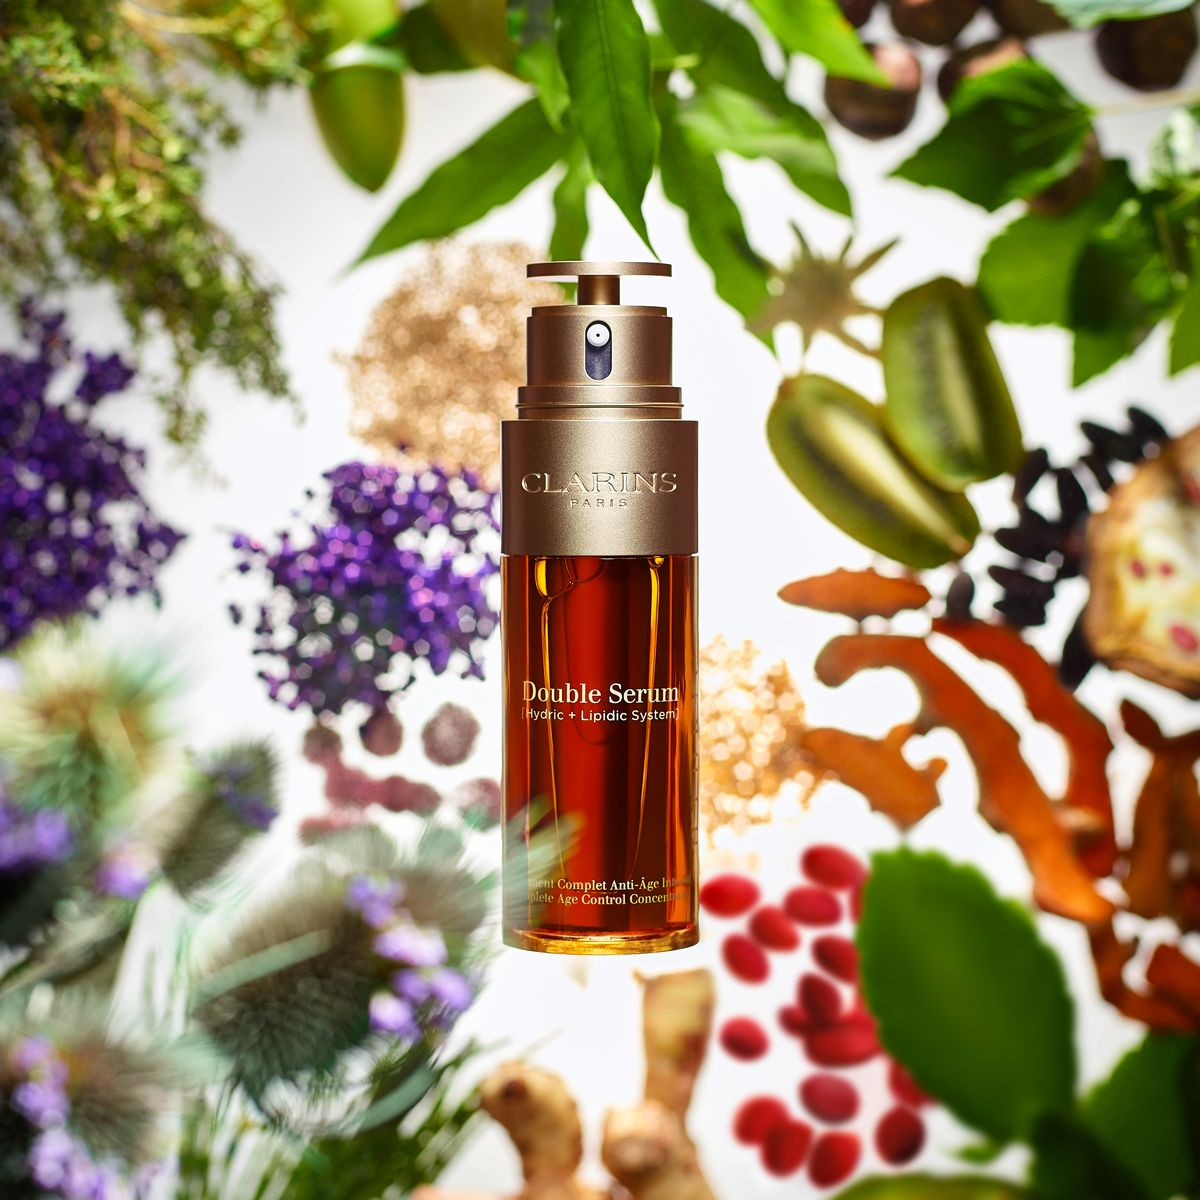 Clarins' Double Serum Might Be All Your Skin Needs To Fight Ageing